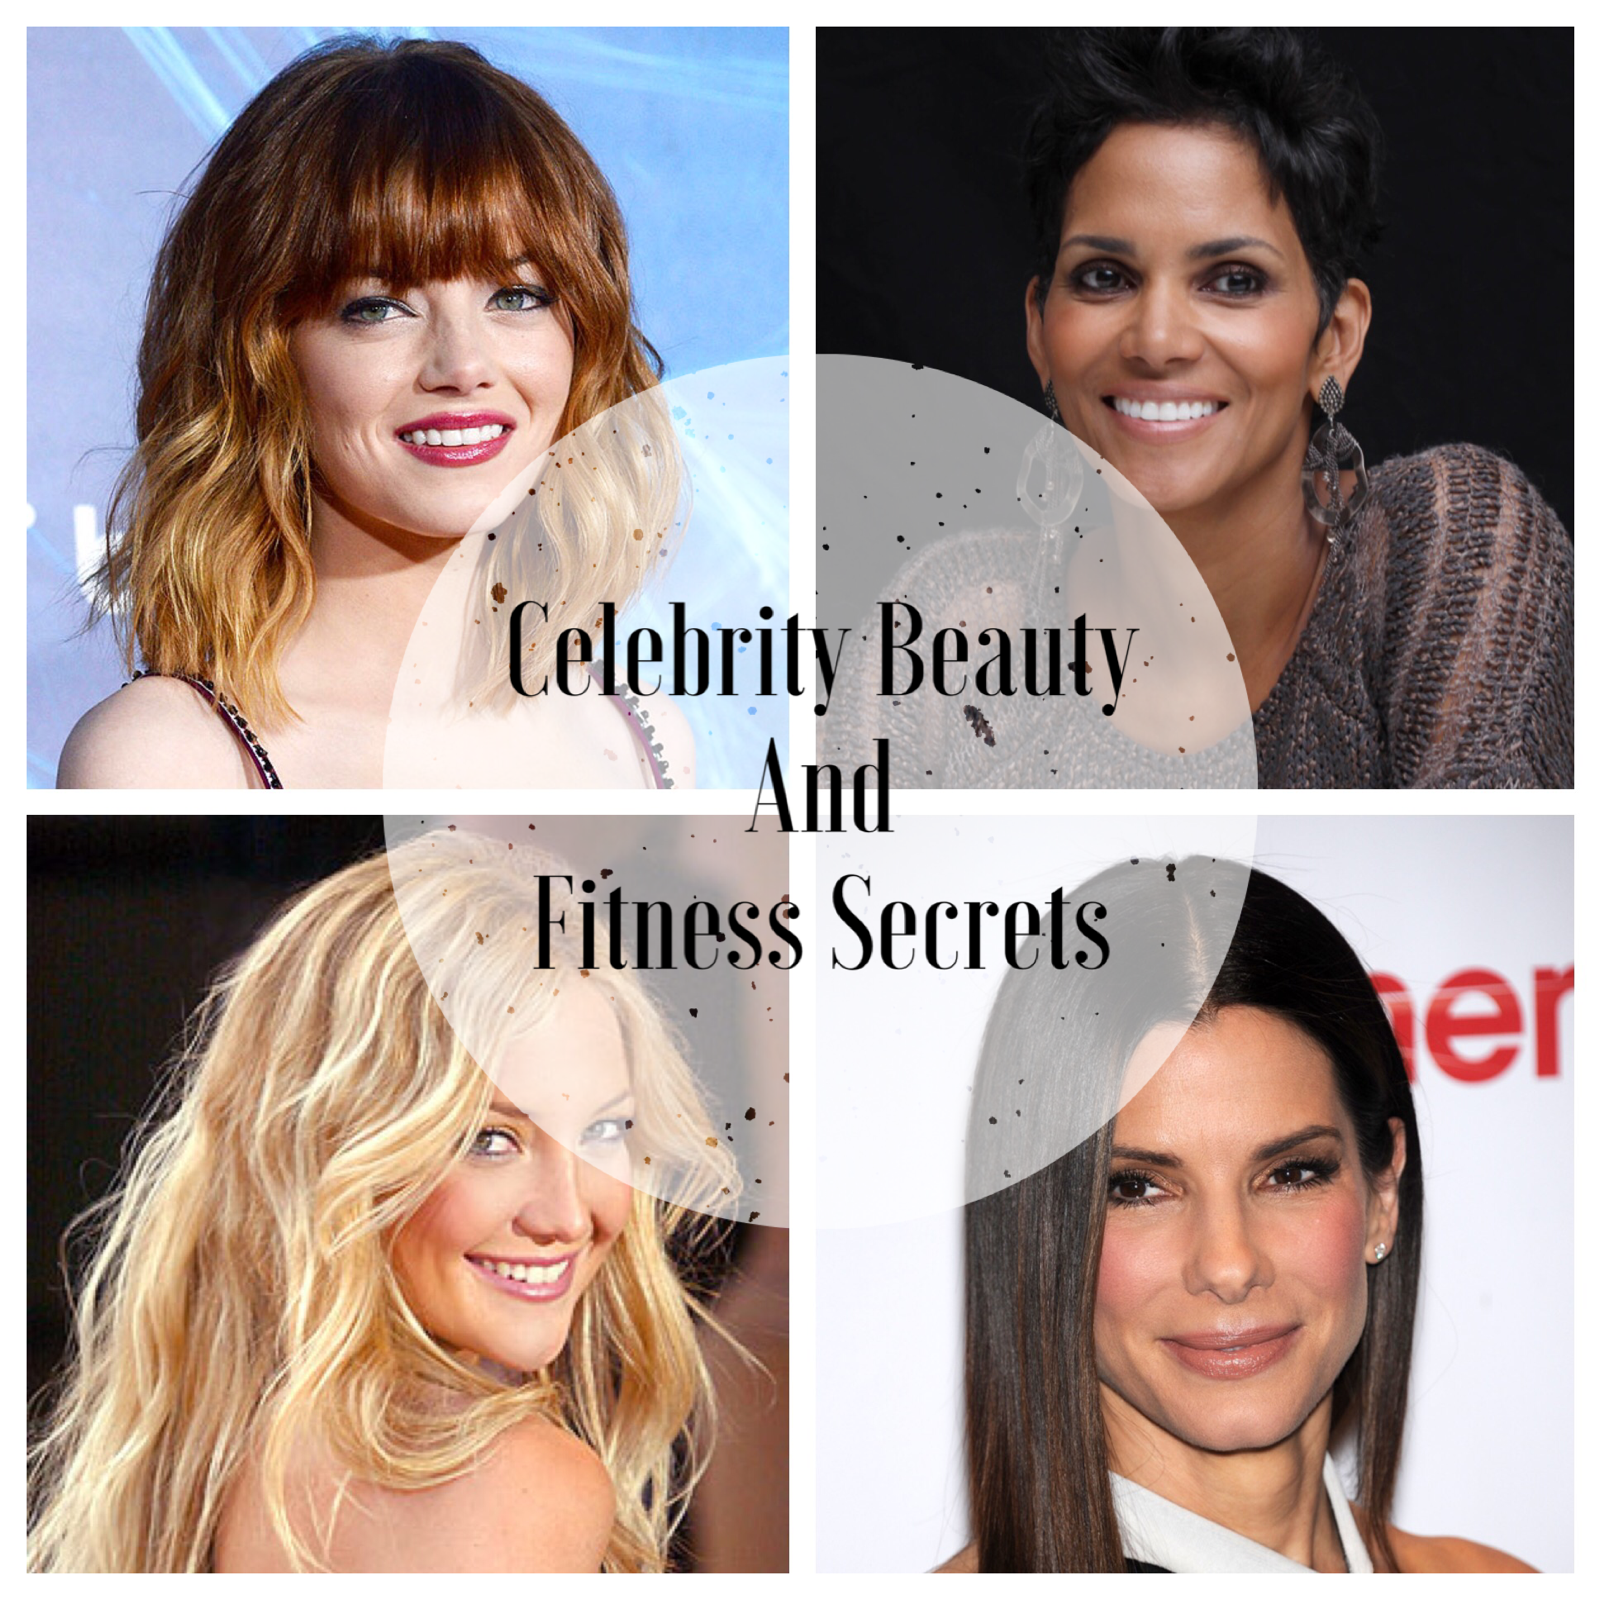 Celebrity Beauty and Fitness Secrets